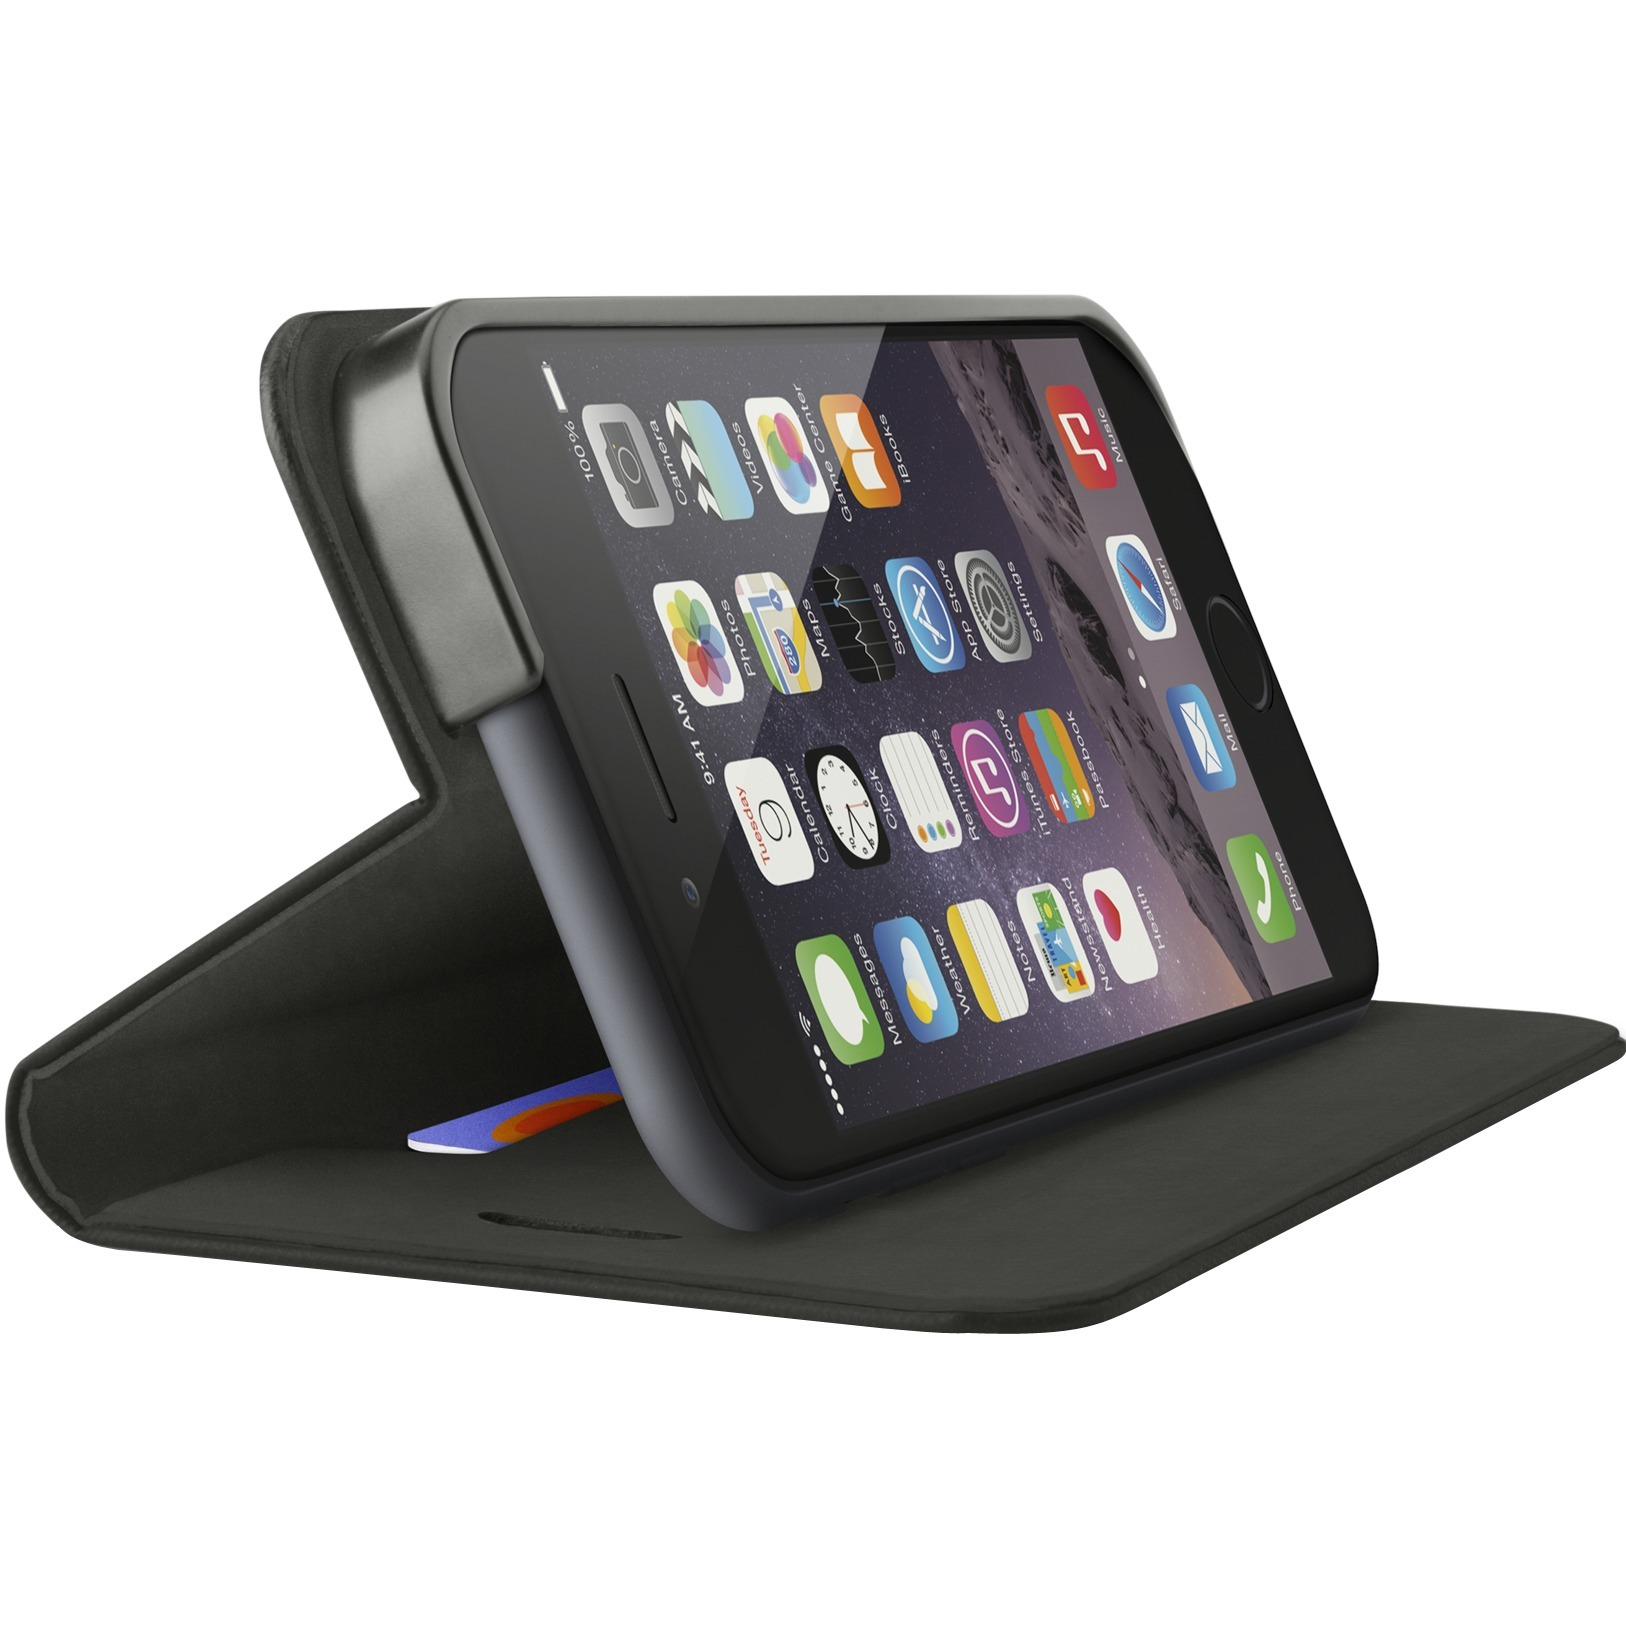 Belkin Classic Folio Carrying Case Folio for iPhone - Blacktop - Scratch Resistant